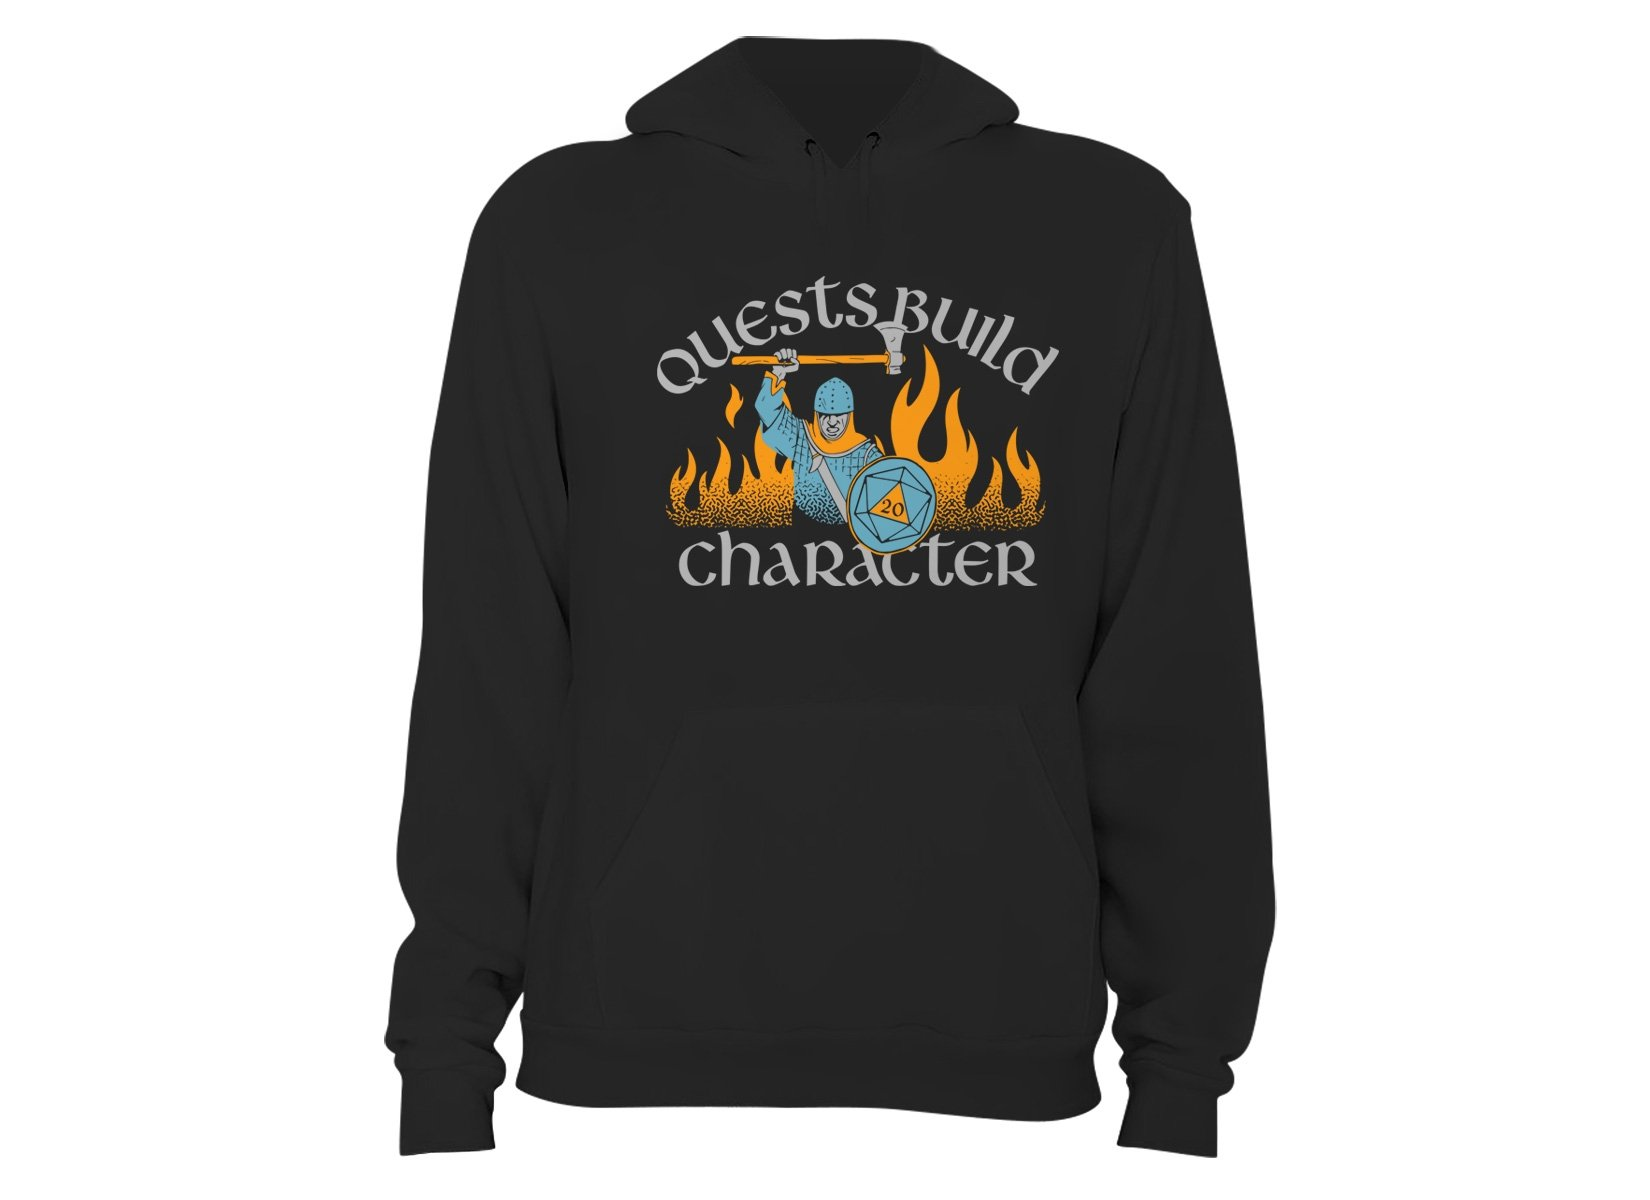 Quests Build Character on Hoodie